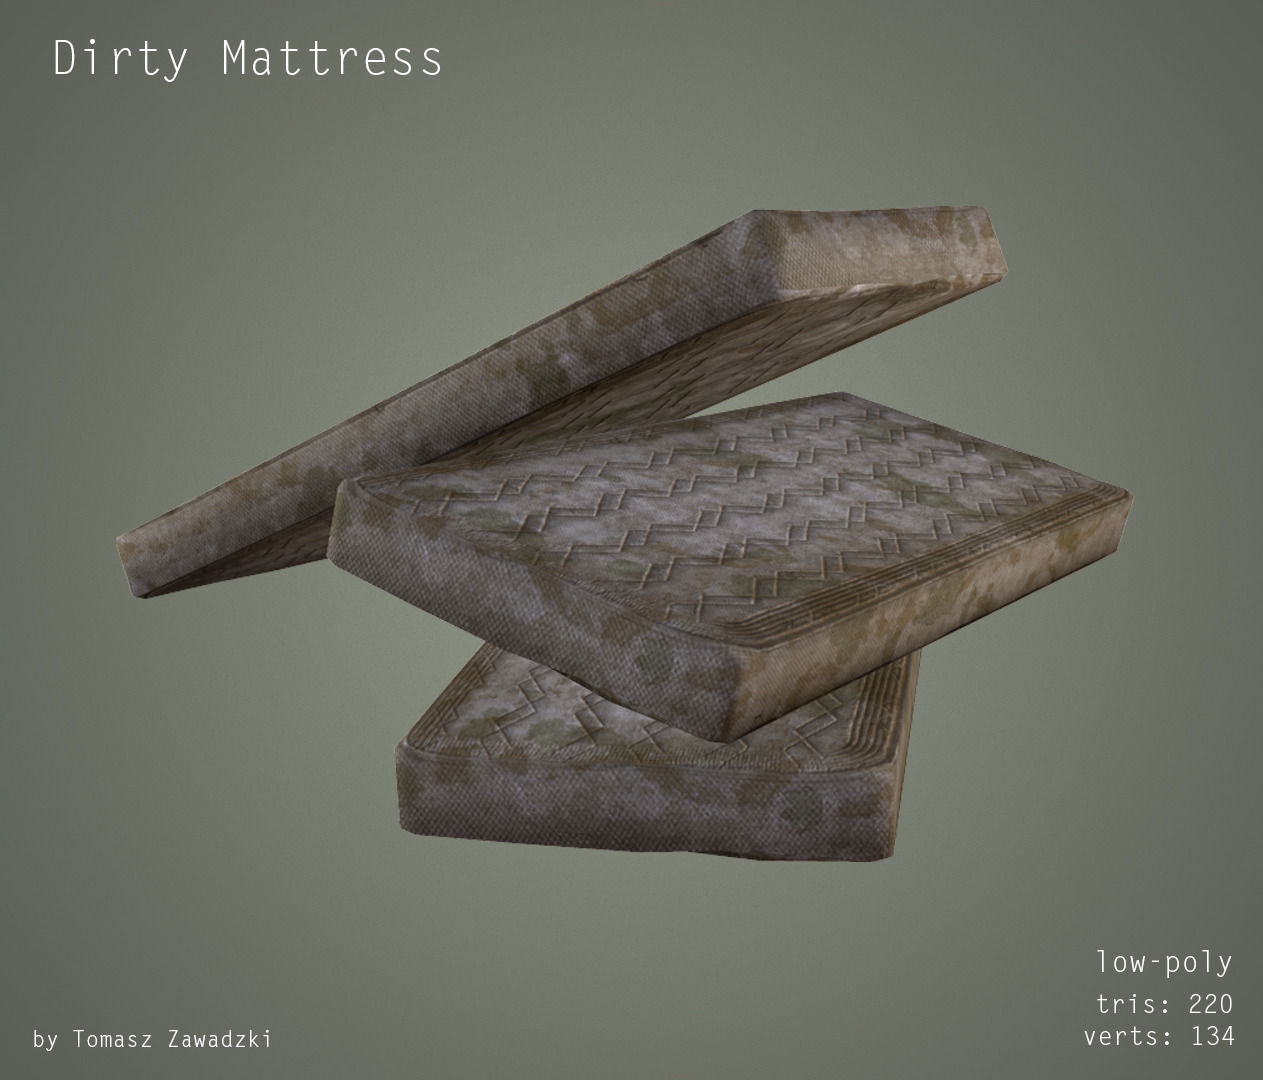 3D model Mattress Low Poly Clean and Dirty VR AR low